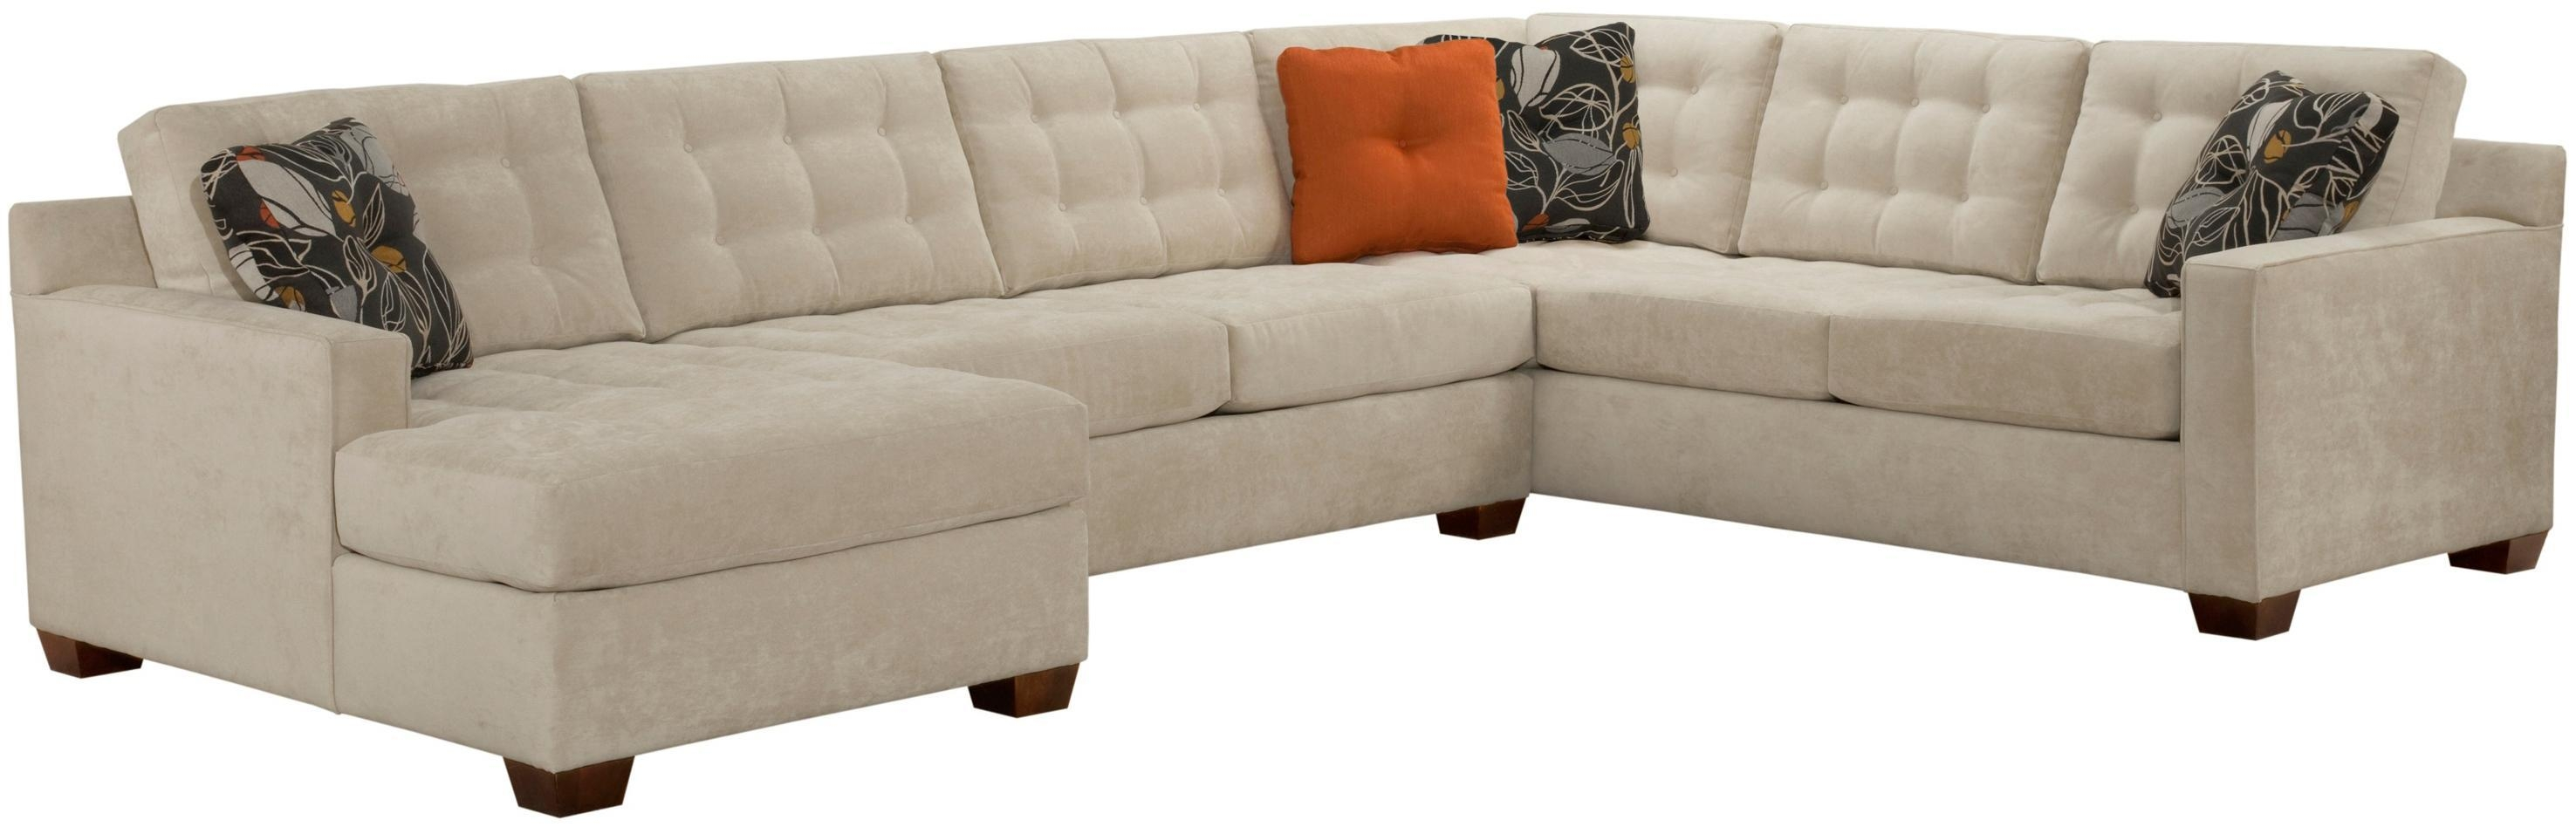 Broyhill Furniture Tribeca Contemporary Sectional Sofa With Left Pertaining To Broyhill Sectional Sofas (Image 7 of 15)